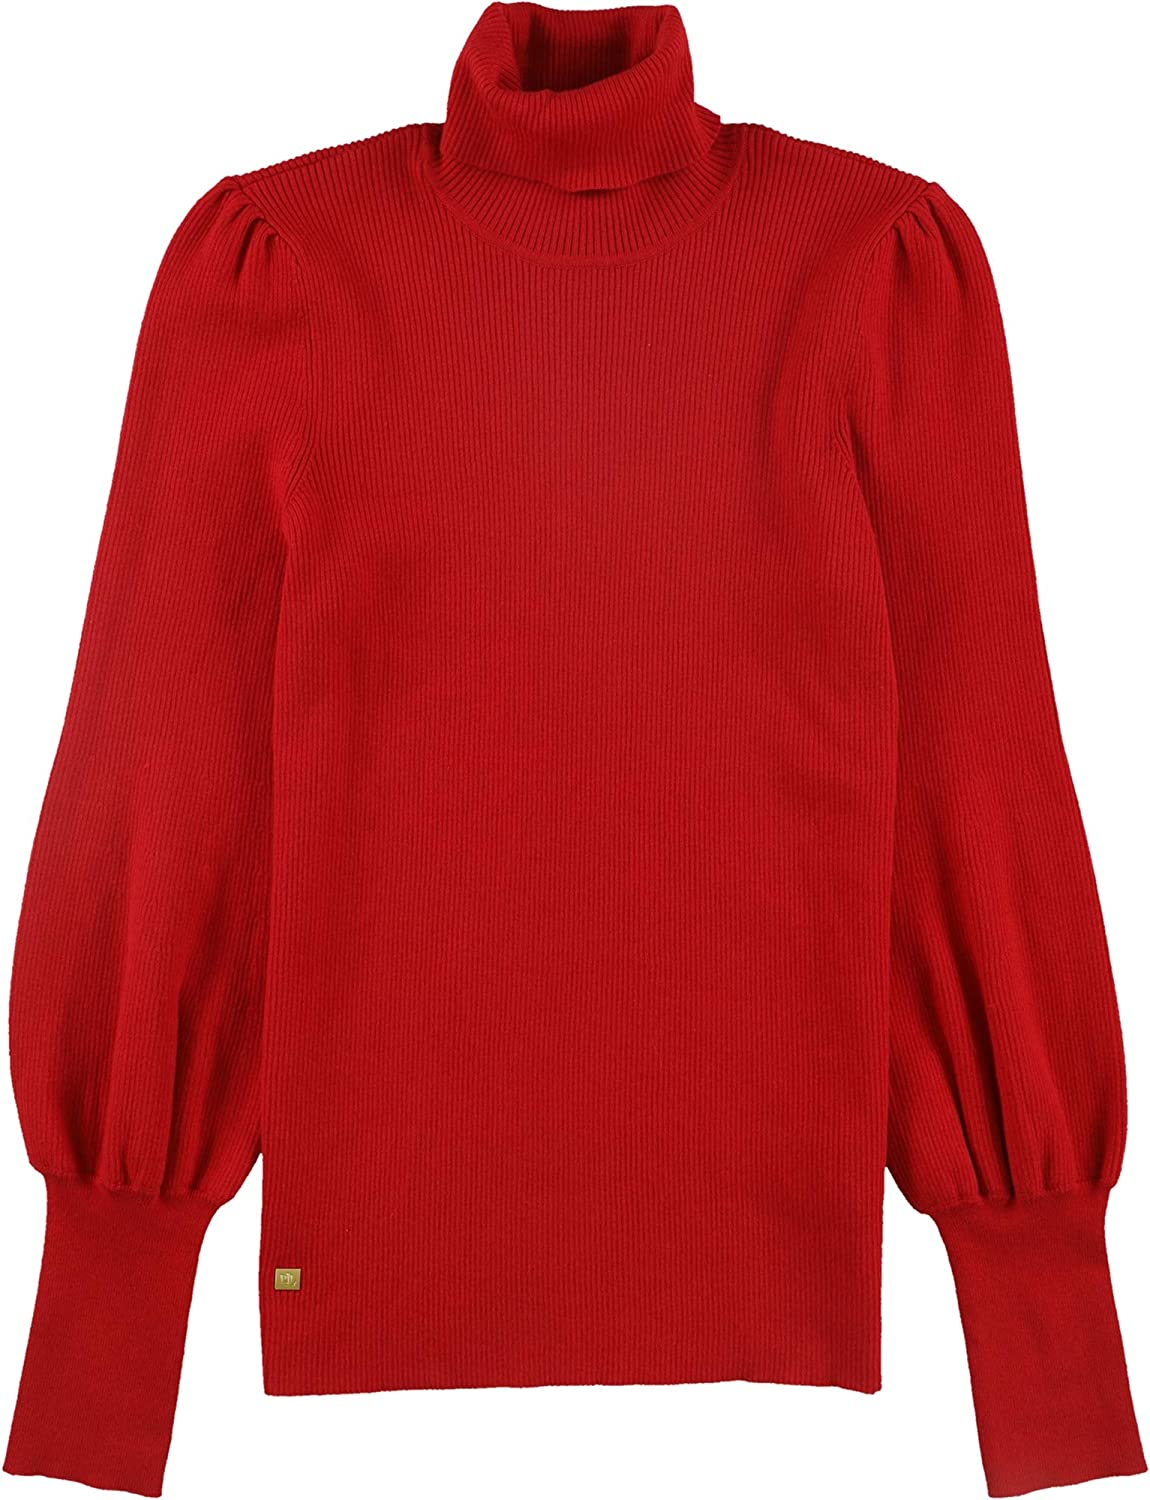 Ralph Lauren Womens Puff-Sleeve Pullover Sweater, Red, Large